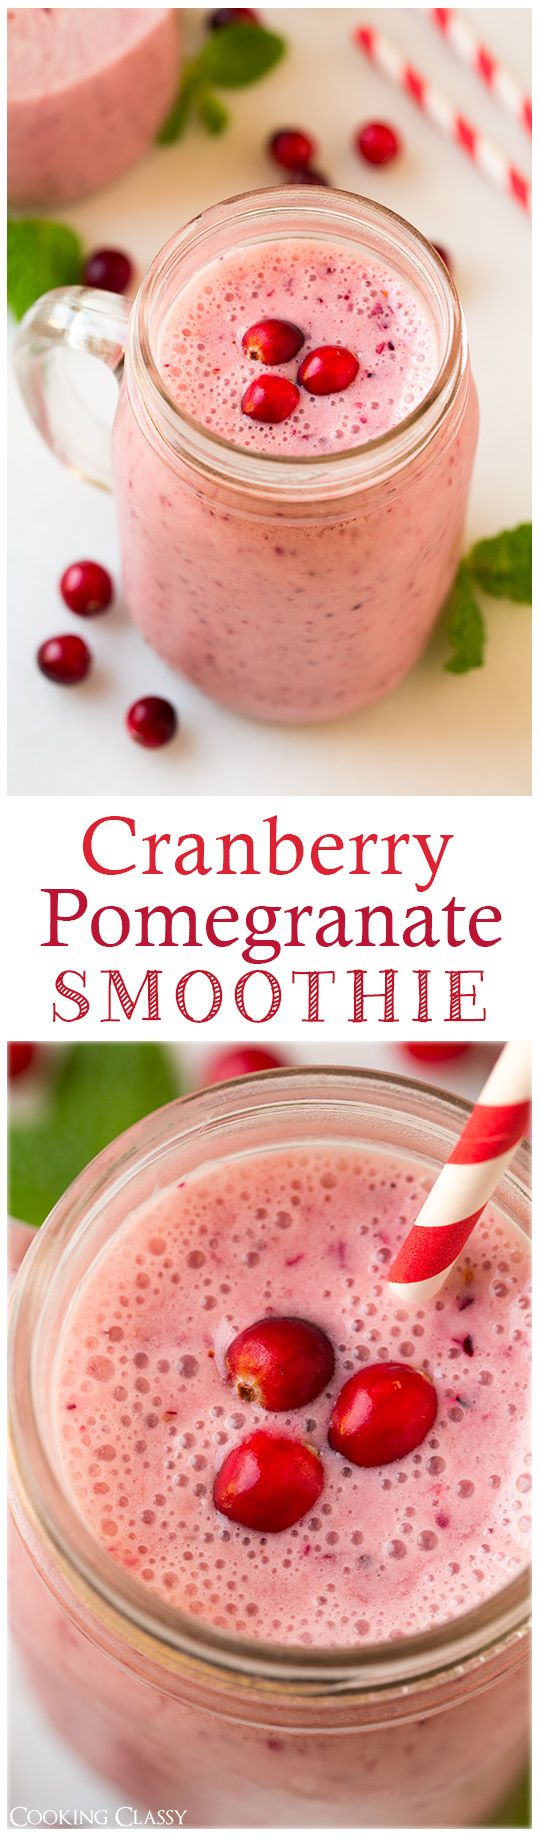 Cranberry Pomegranate Smoothie - this smoothie is so refreshing! Such a delicious, healthy breakfast. The banana and vanilla yogurt perfectly balance out the tartness of the cranberries.